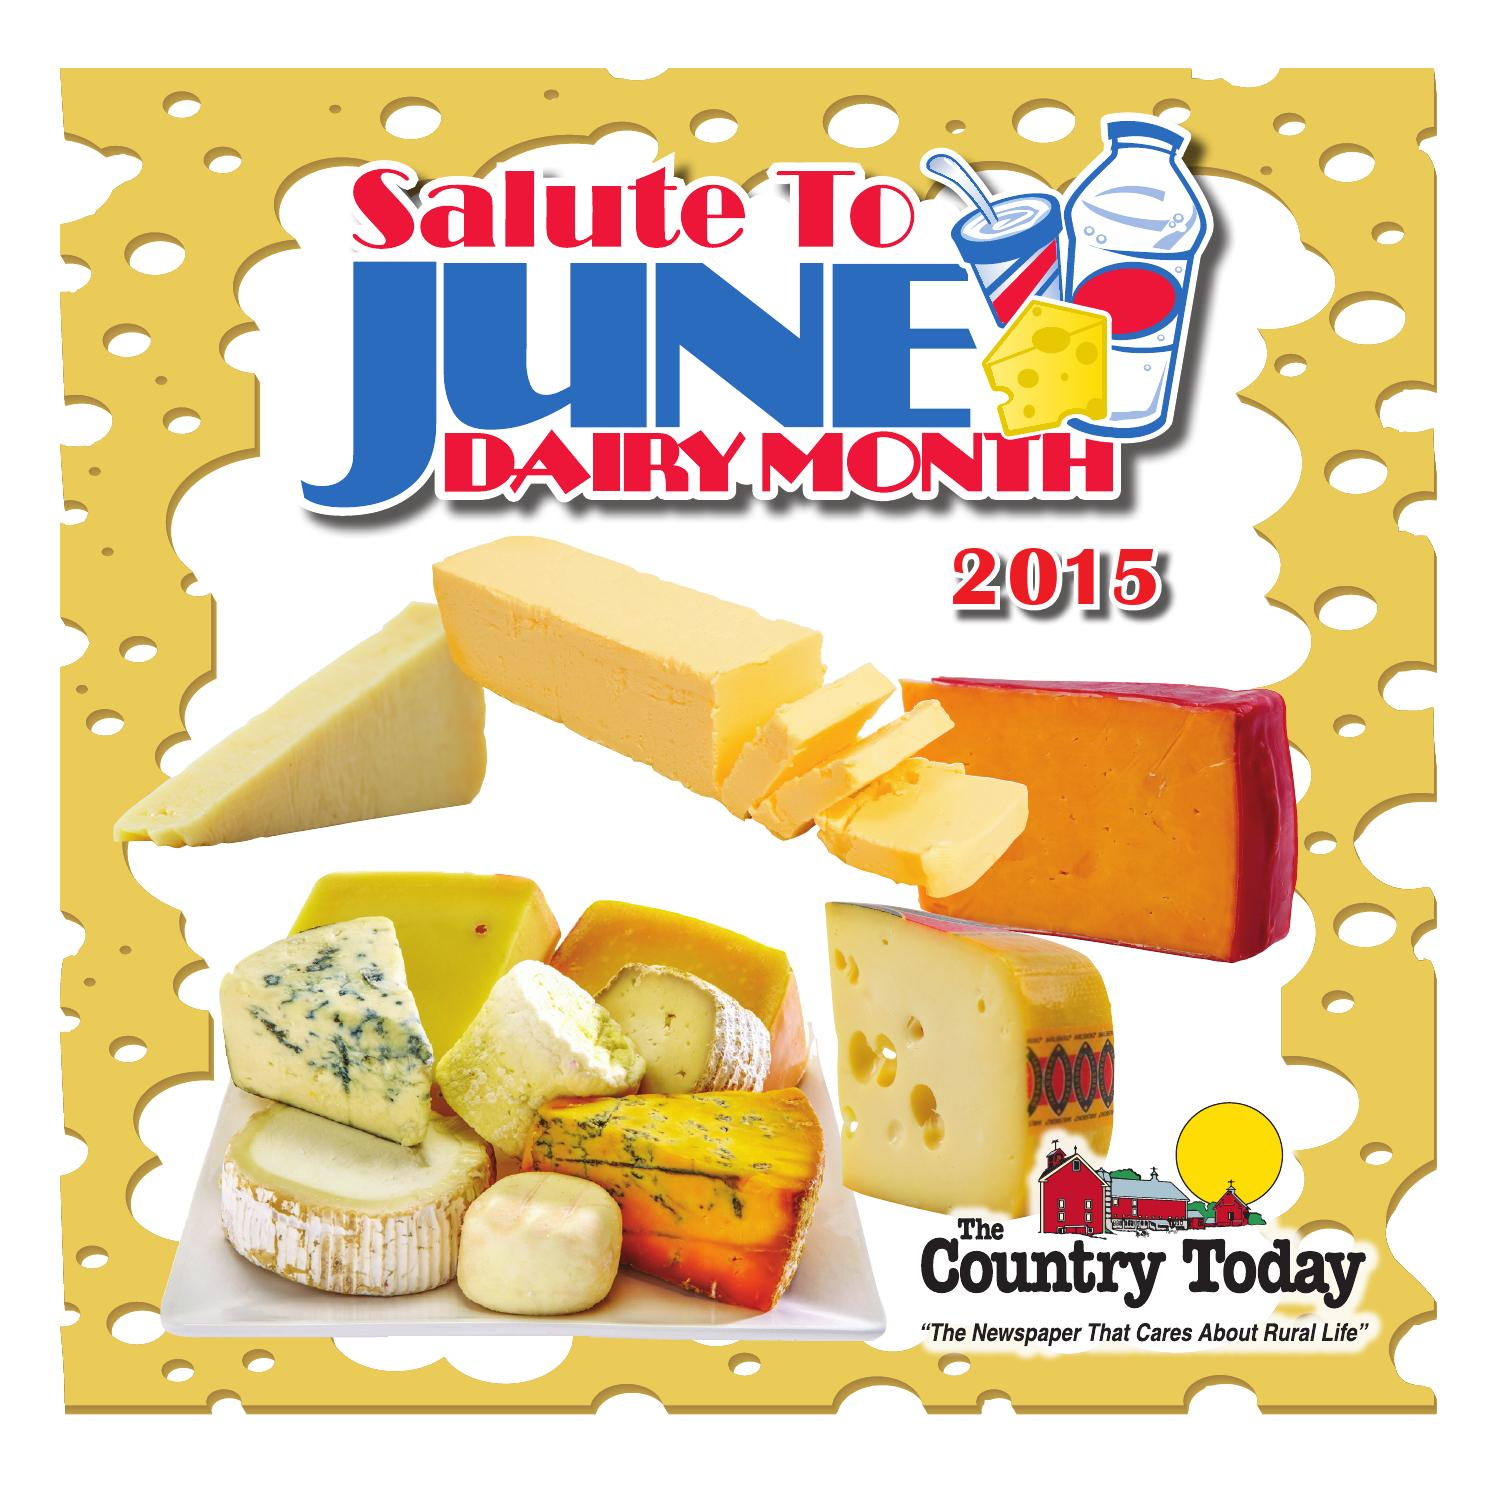 Salute to June Dairy Month 2015 by Leader Telegram.